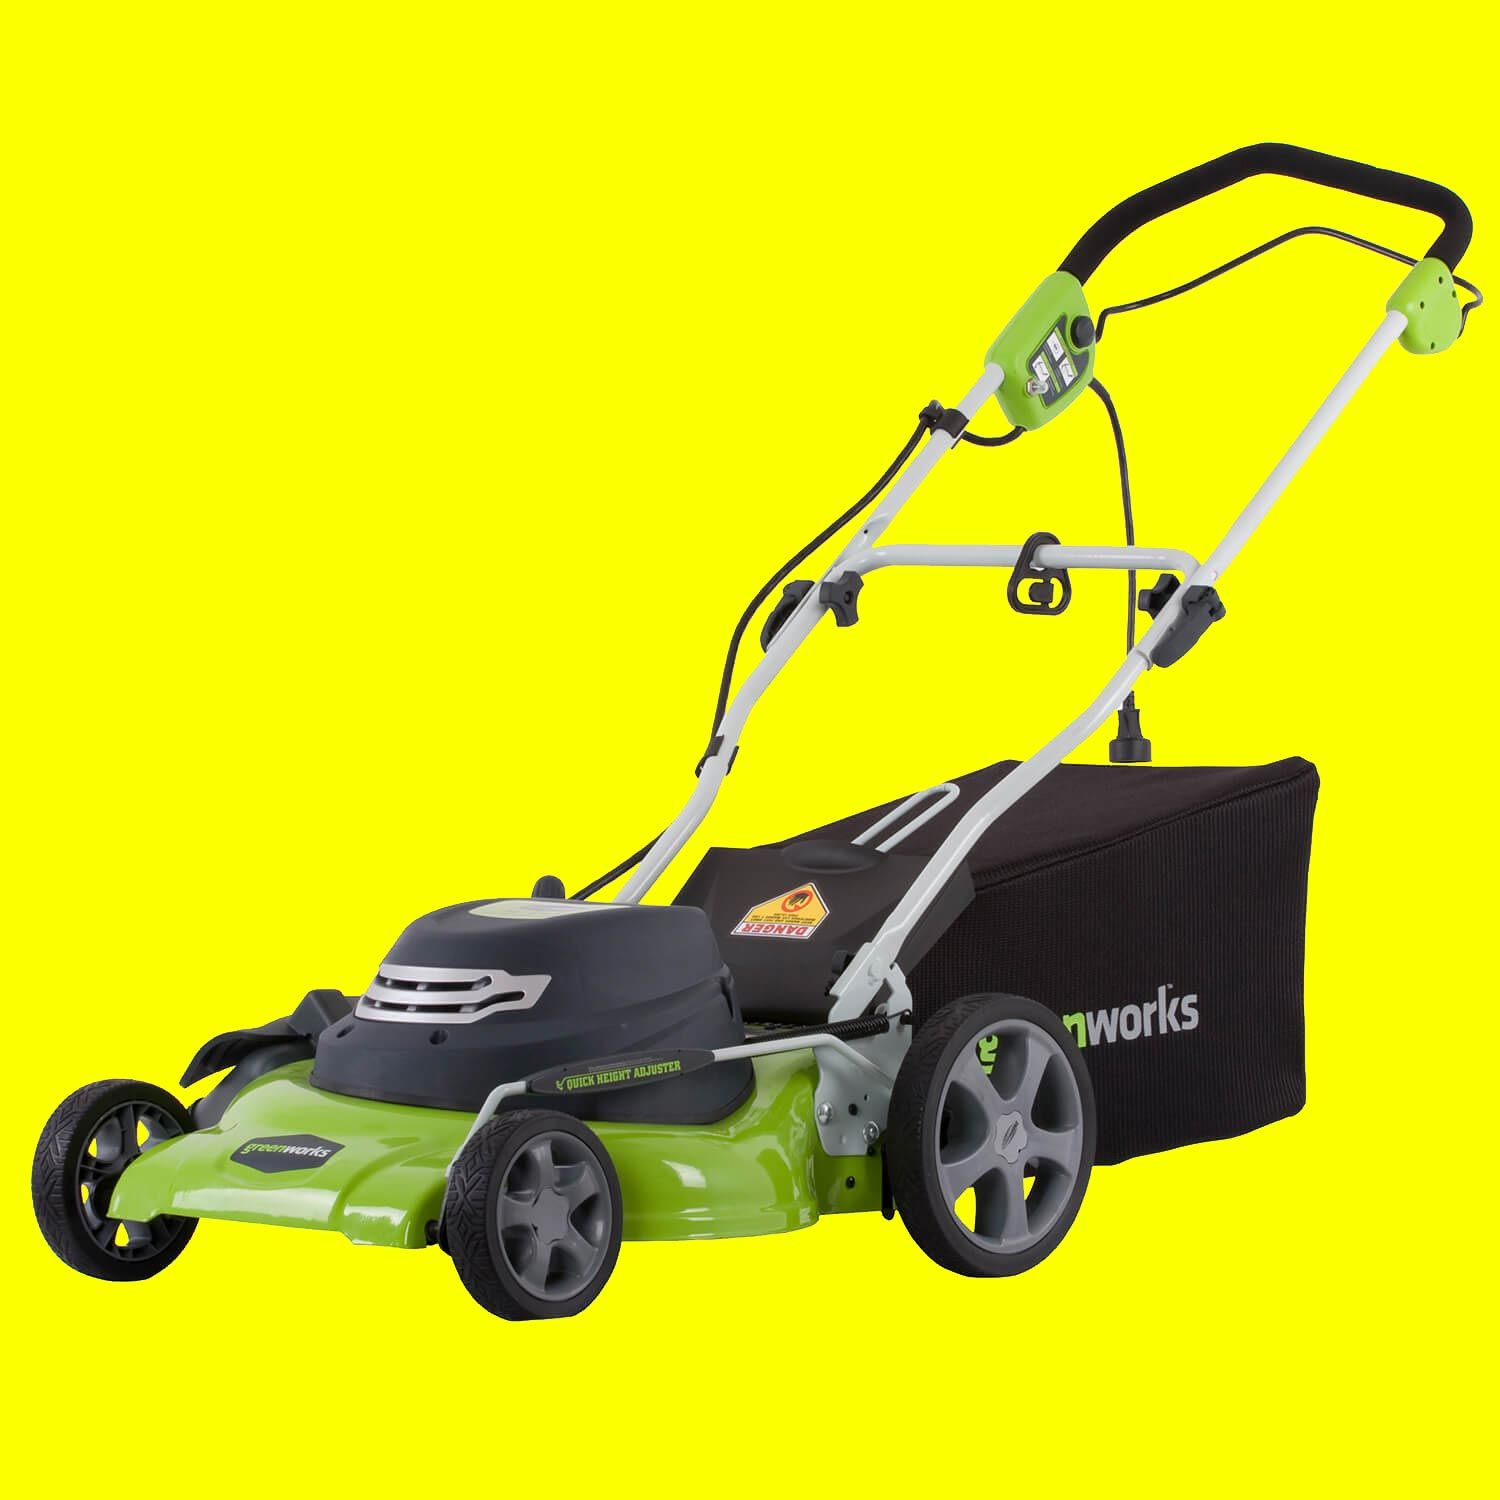 Greenworks 20-inch 12 amp corded lawn mower review